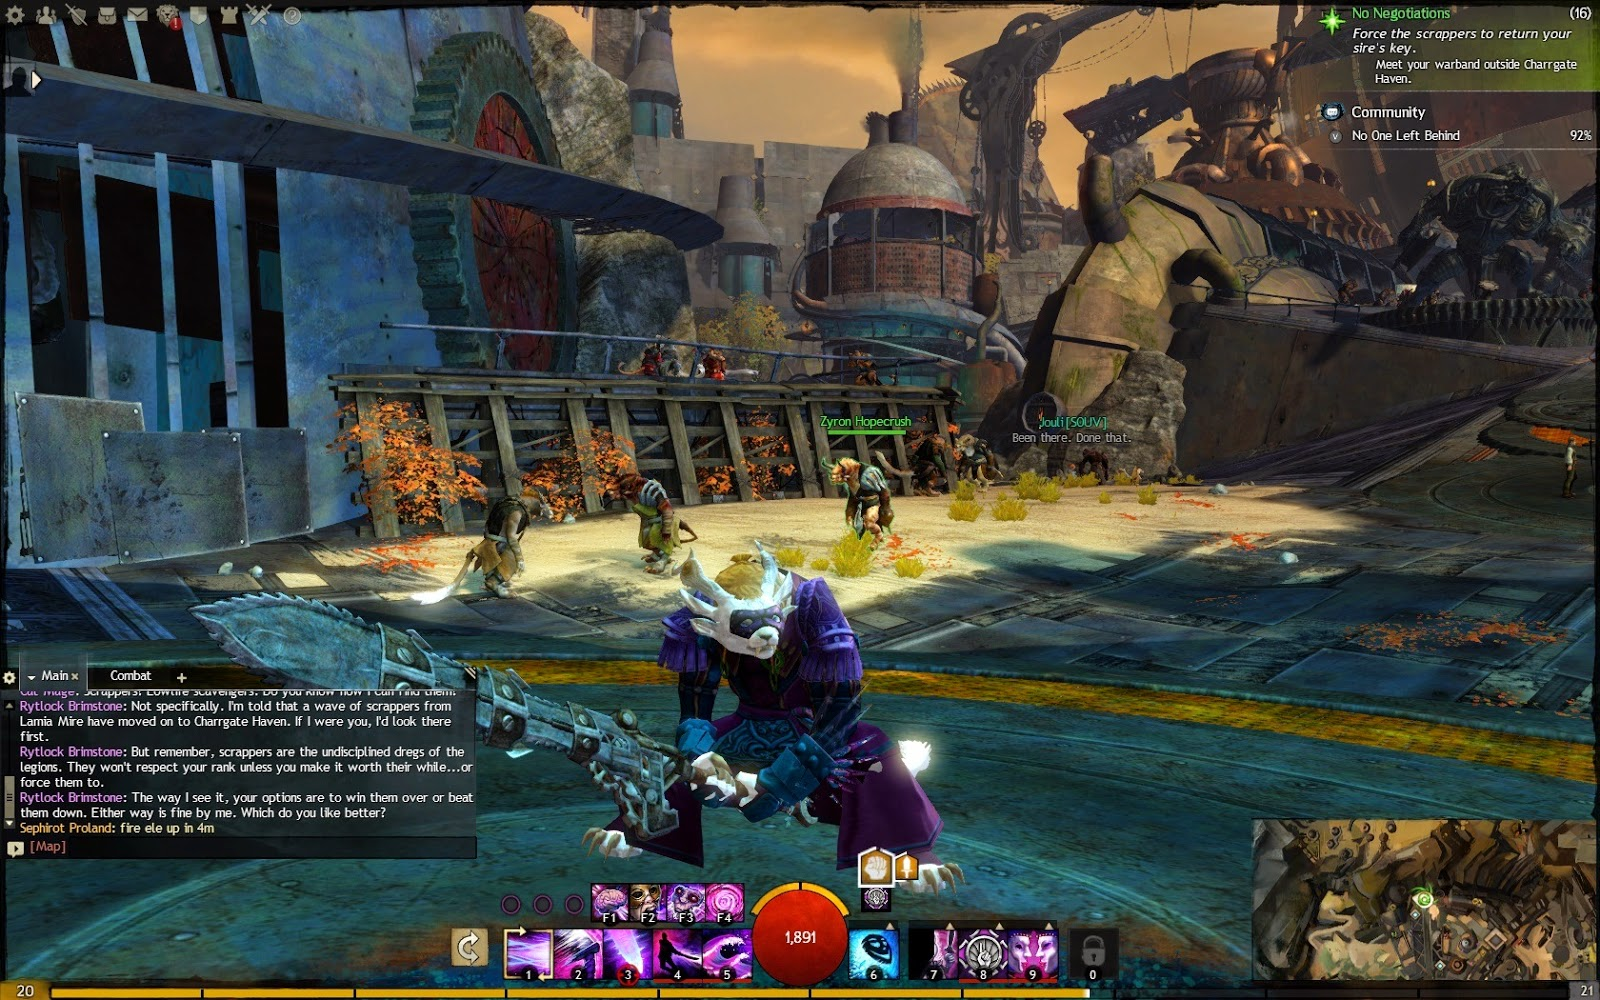 a review of the game guild wars Guild wars 2 is beautiful game that runs very well on most mid-spec machines, but the developer needs to rethink its approach to rewarding the game's most devout players.